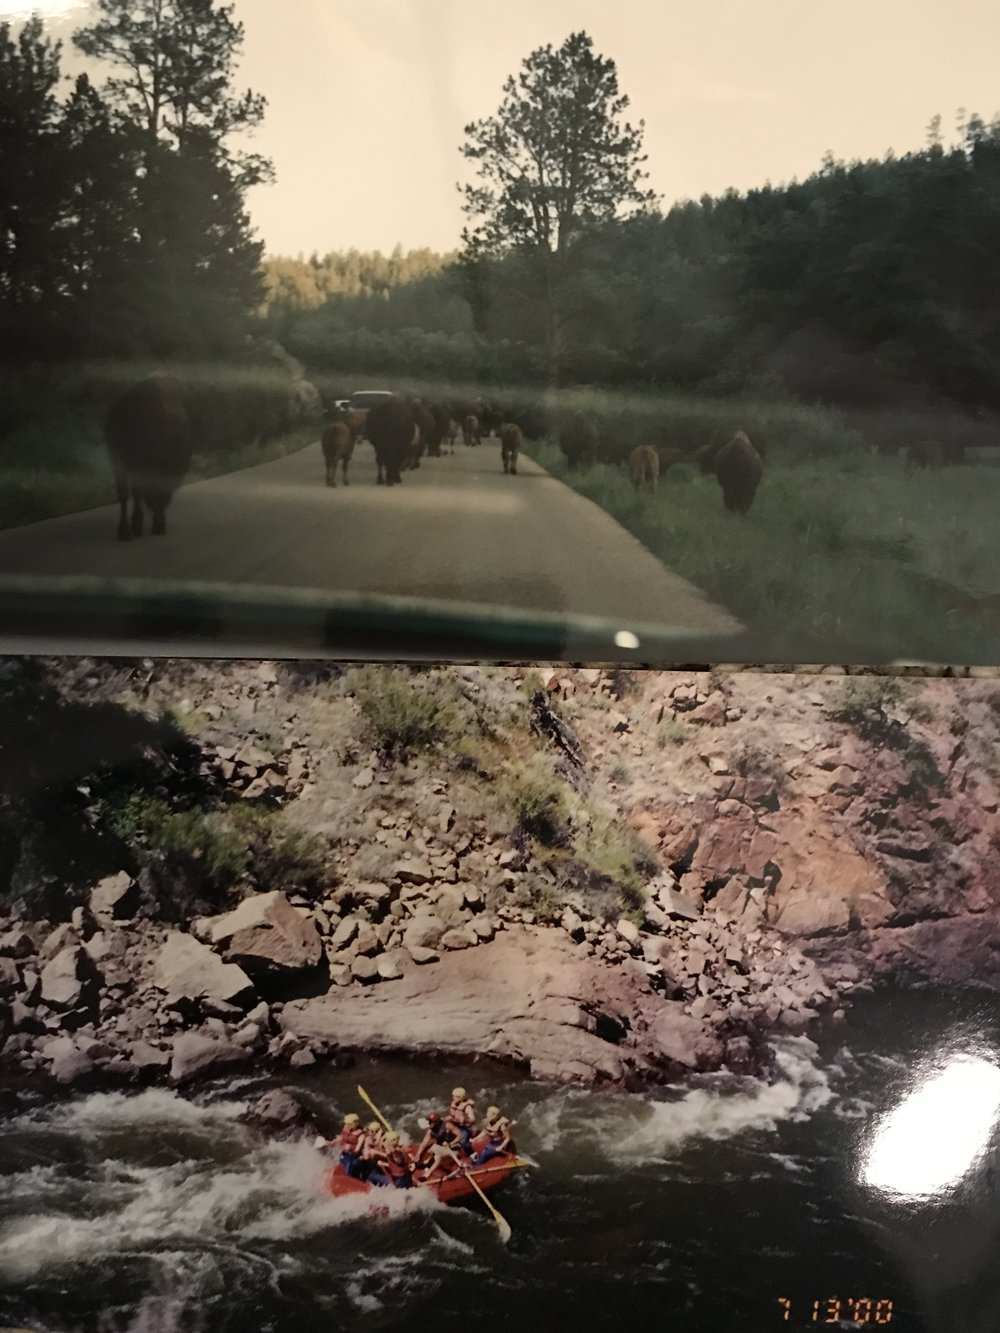 Some pics from Mike R's road trips growing up as a kid! Top pic in  Yellowstone National Park  and bottom is WW Rafting in Colorado.